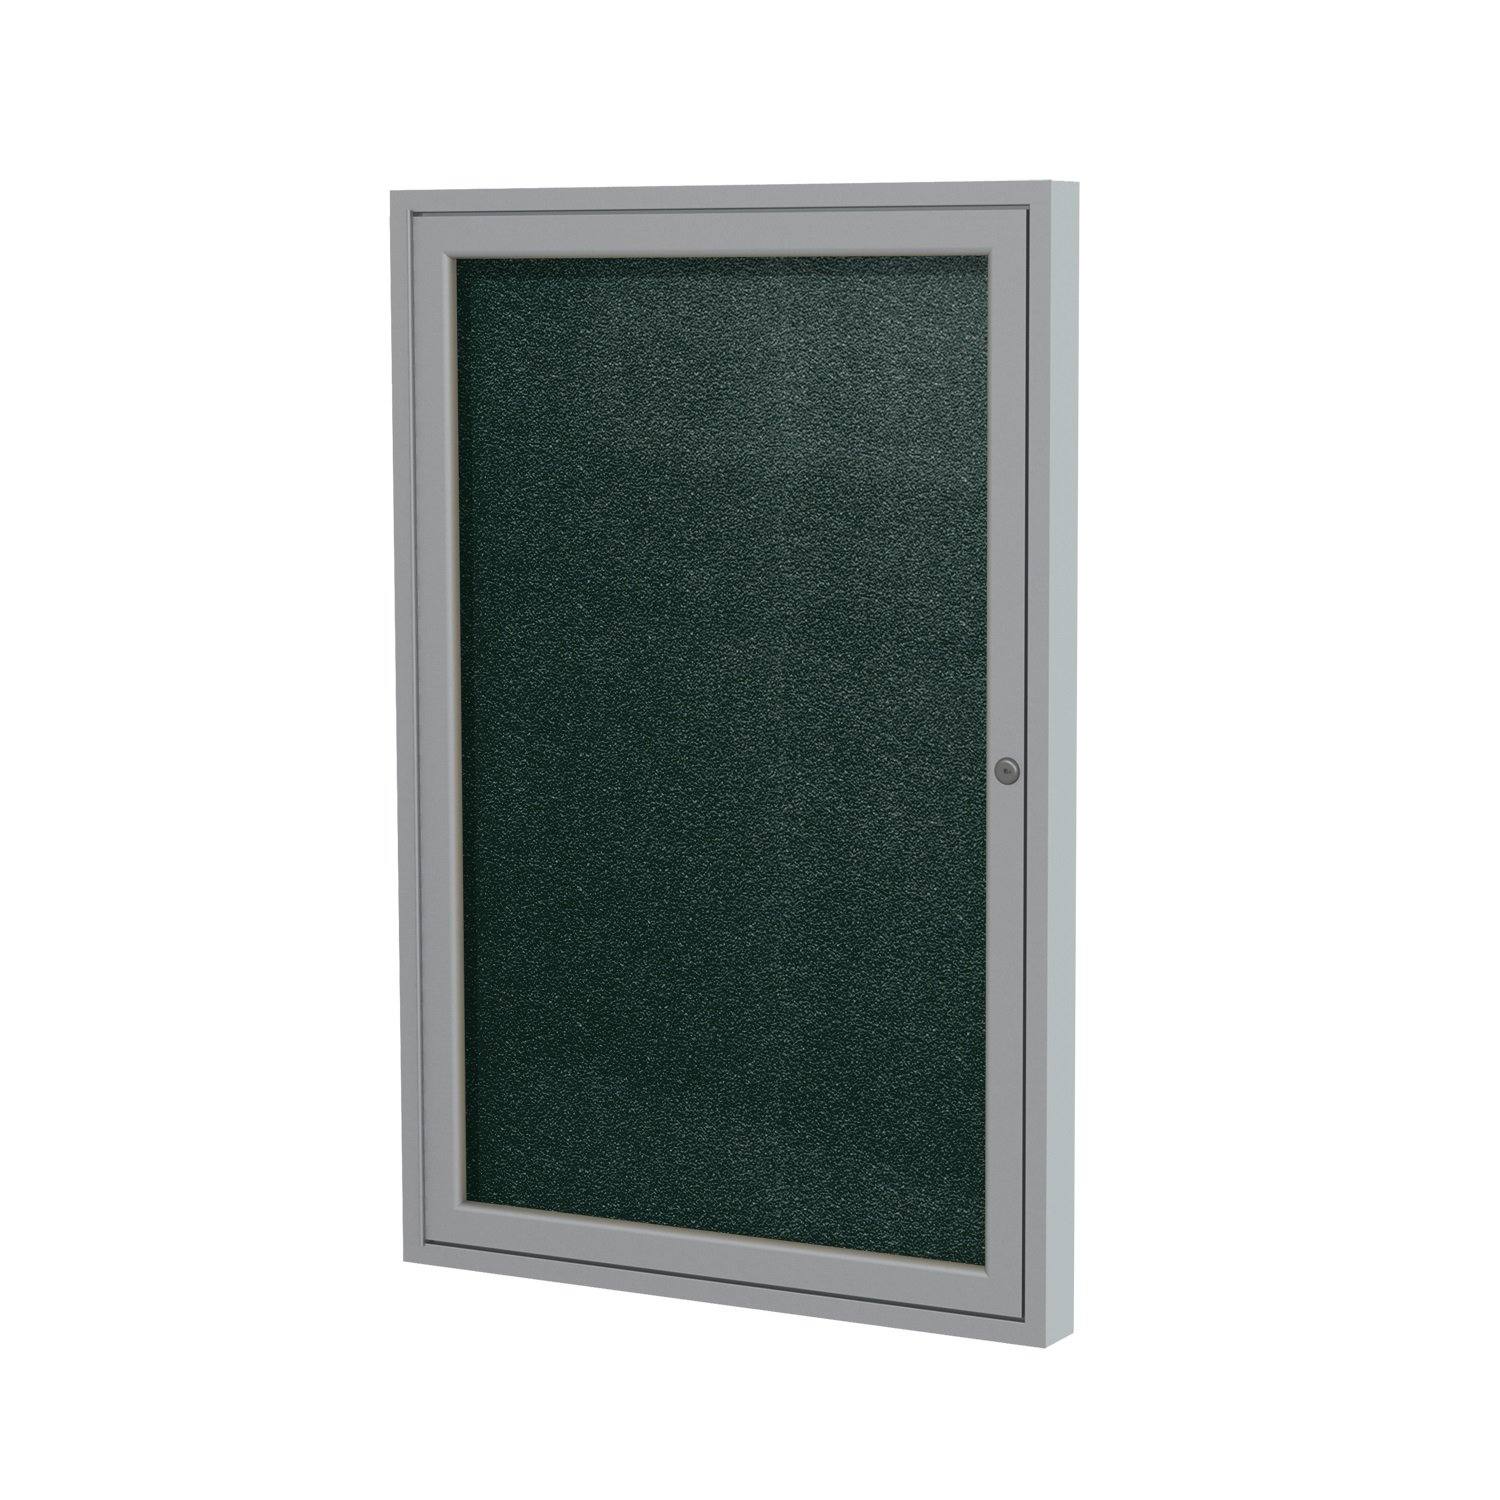 Ghent 24''x18''  1-Door Outdoor Enclosed Vinyl Bulletin Board, Shatter Resistant, with Lock, Satin Aluminum Frame - Ebony (PA12418VX-183), Made in the USA